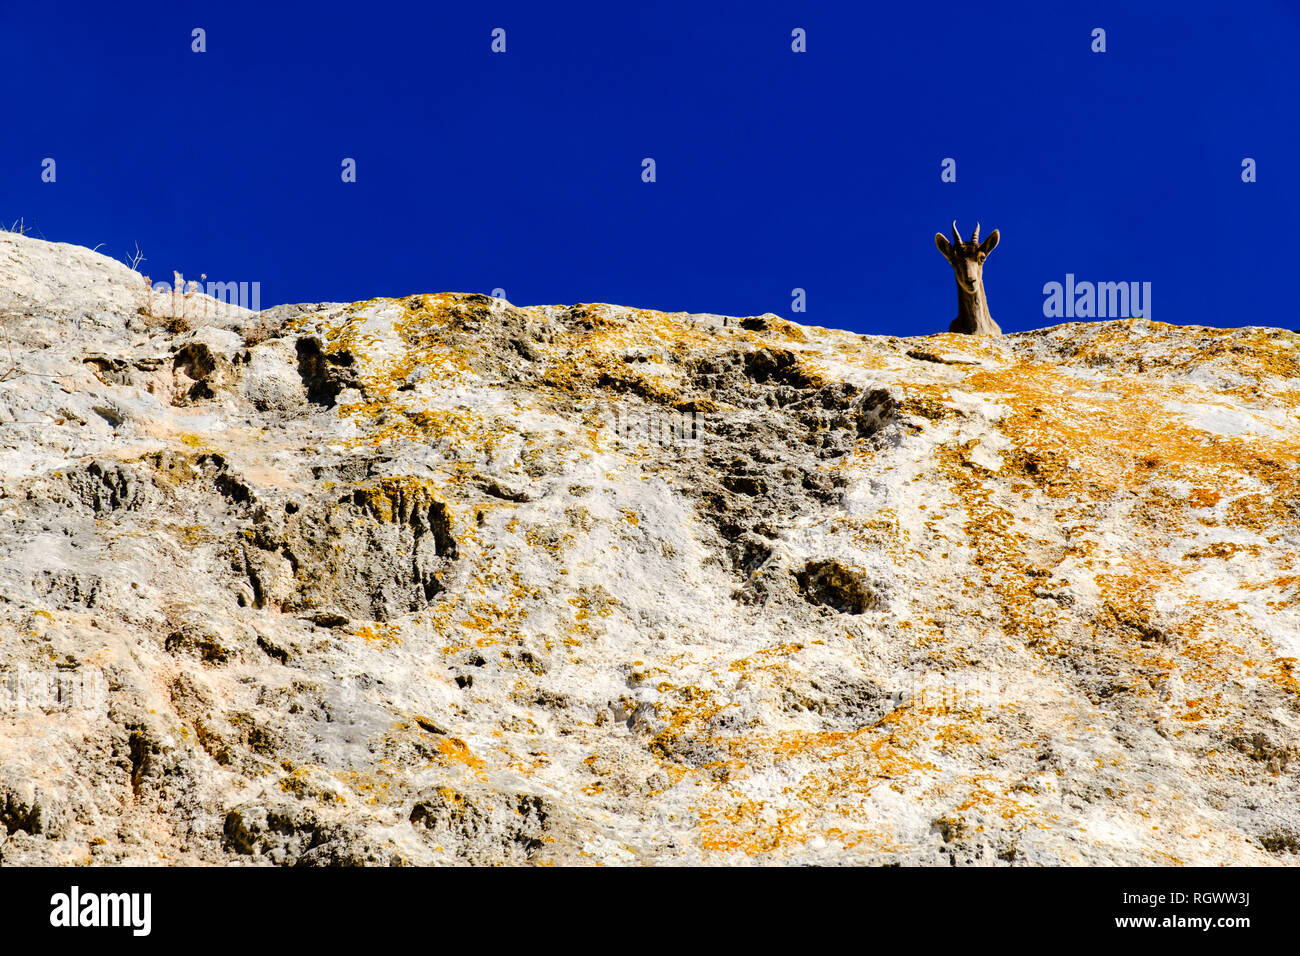 An ibex watches on the rocks overlooking a pathway in the mountain top village of Comares, Axarquia, Malaga, Andalucia, Spain. 28th January 2019 - Stock Image